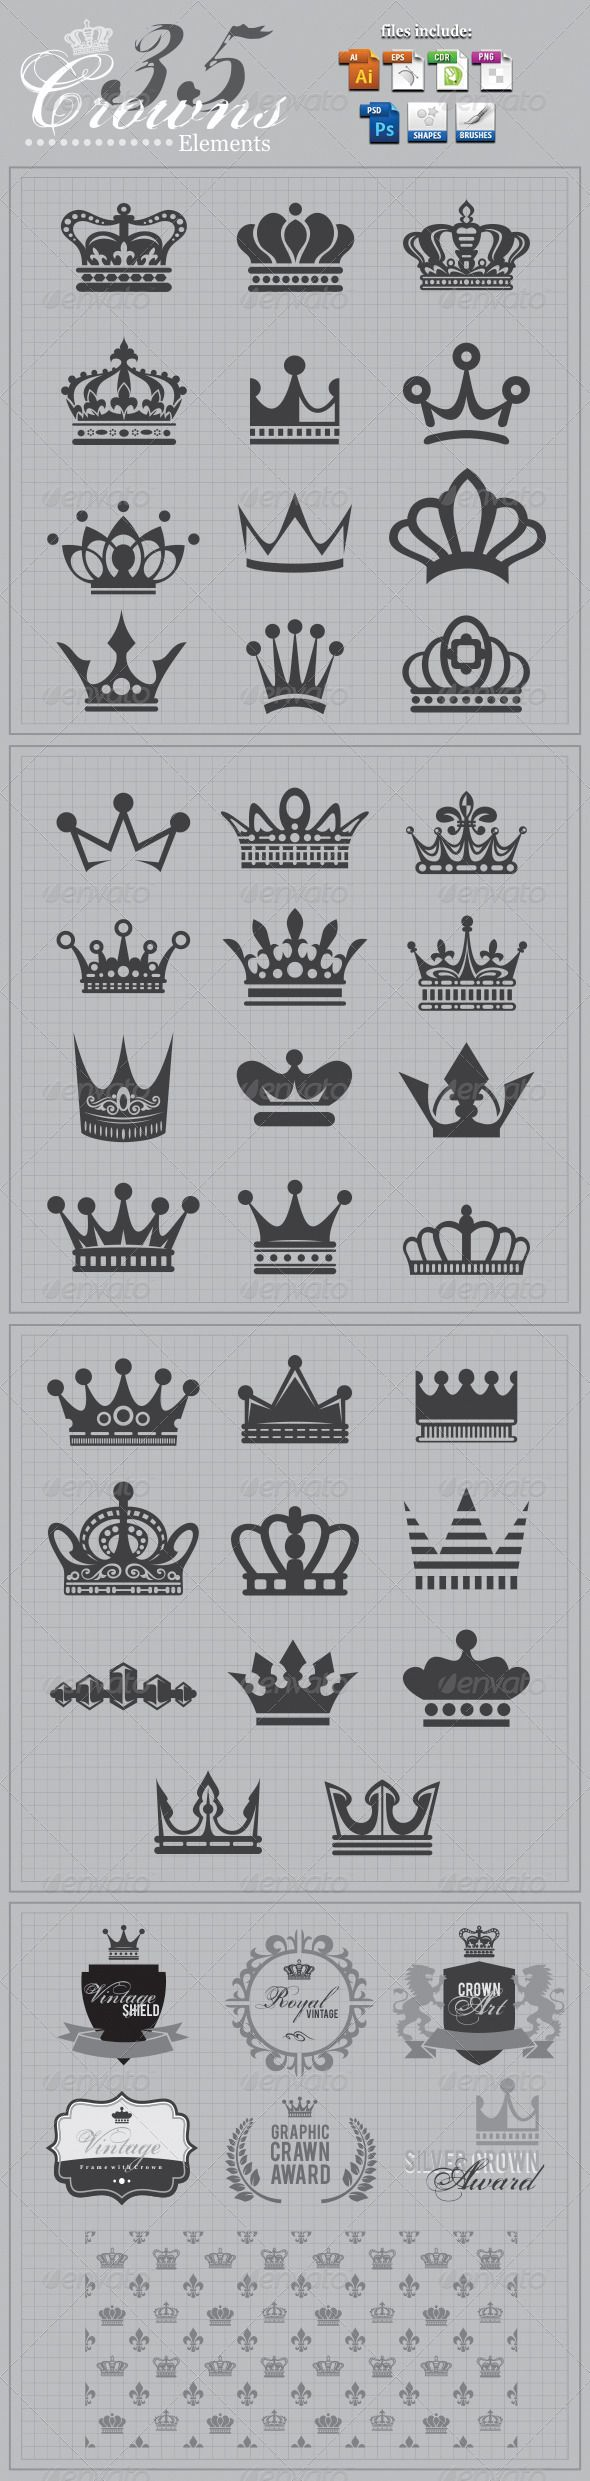 Crowns Elements v2 — Photoshop PSD #kingdom #crowns • Available here → https://graphicriver.net/item/crowns-elements-v2/3831884?ref=pxcr